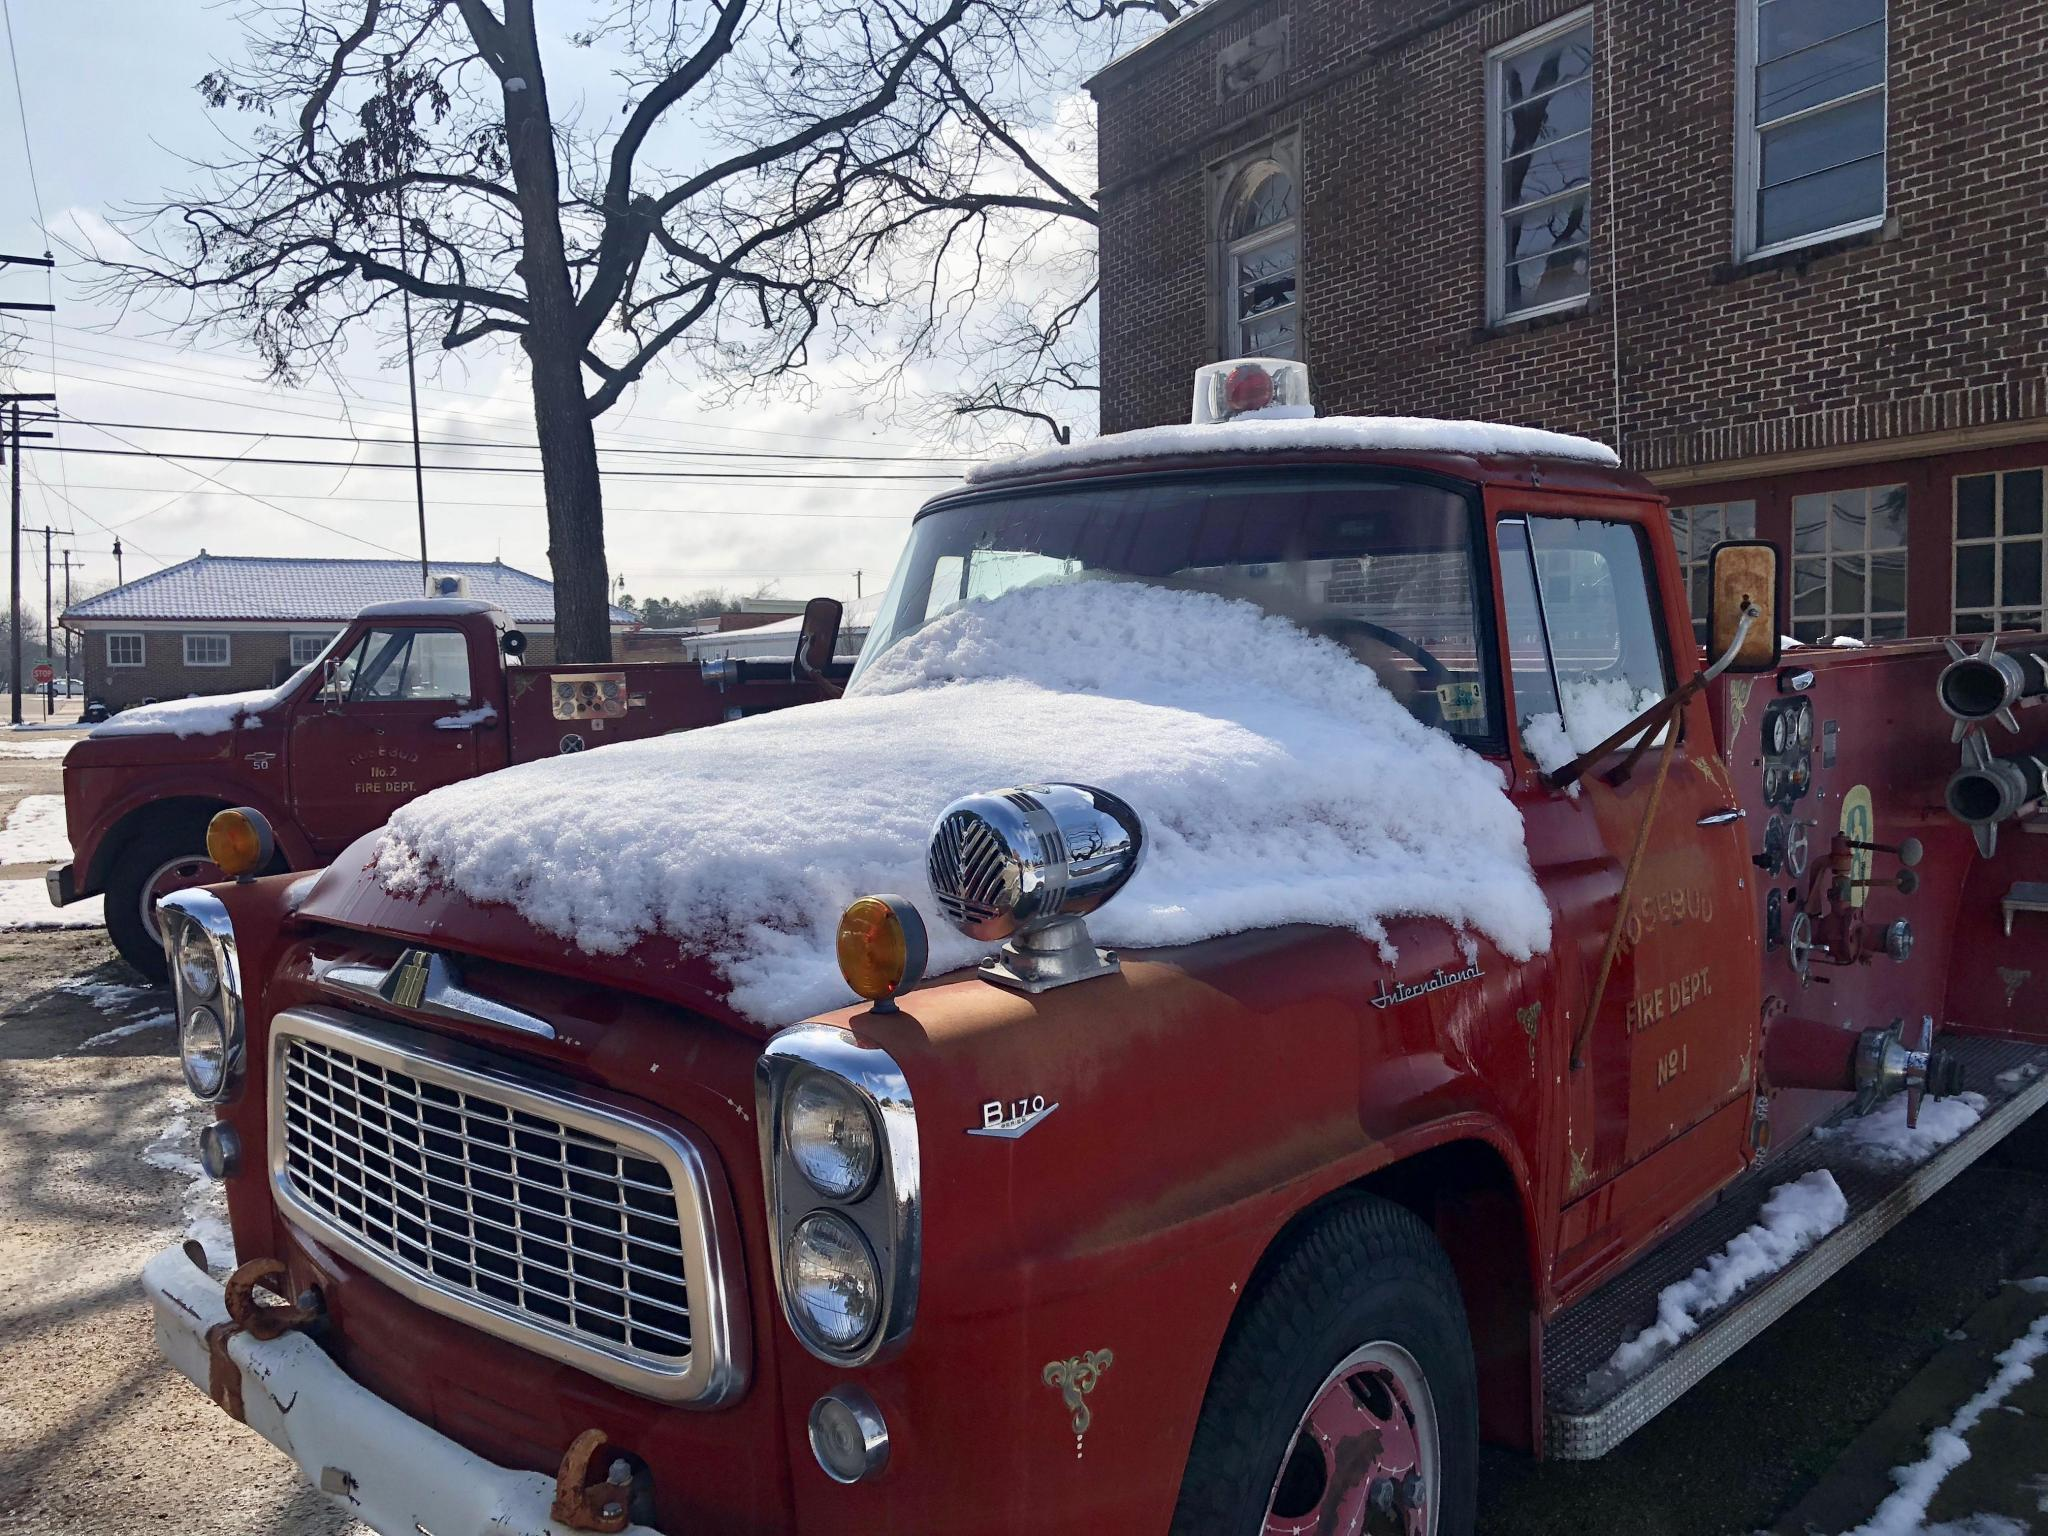 Photos by Mark PelzelThe Rosebud community and much of Falls County was blanketed with snow on Sunday when a winter storm moved through the area. Parts of the area saw up to six inches ofthe white stuff, ararity in Texas.